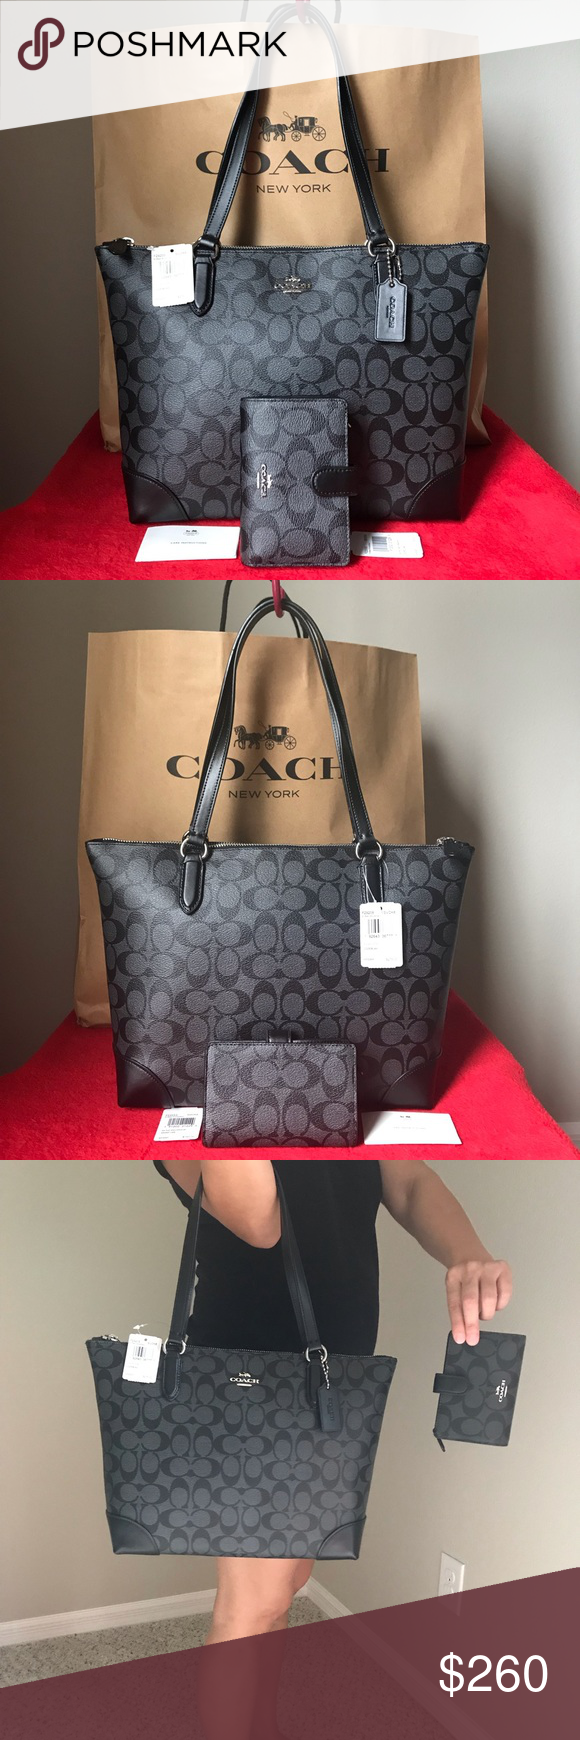 edfdaf9c3c7c ✅✅NWT Coach Set✅✅ NWT Coach F29208 Zip Top Tote in Signature Canvas